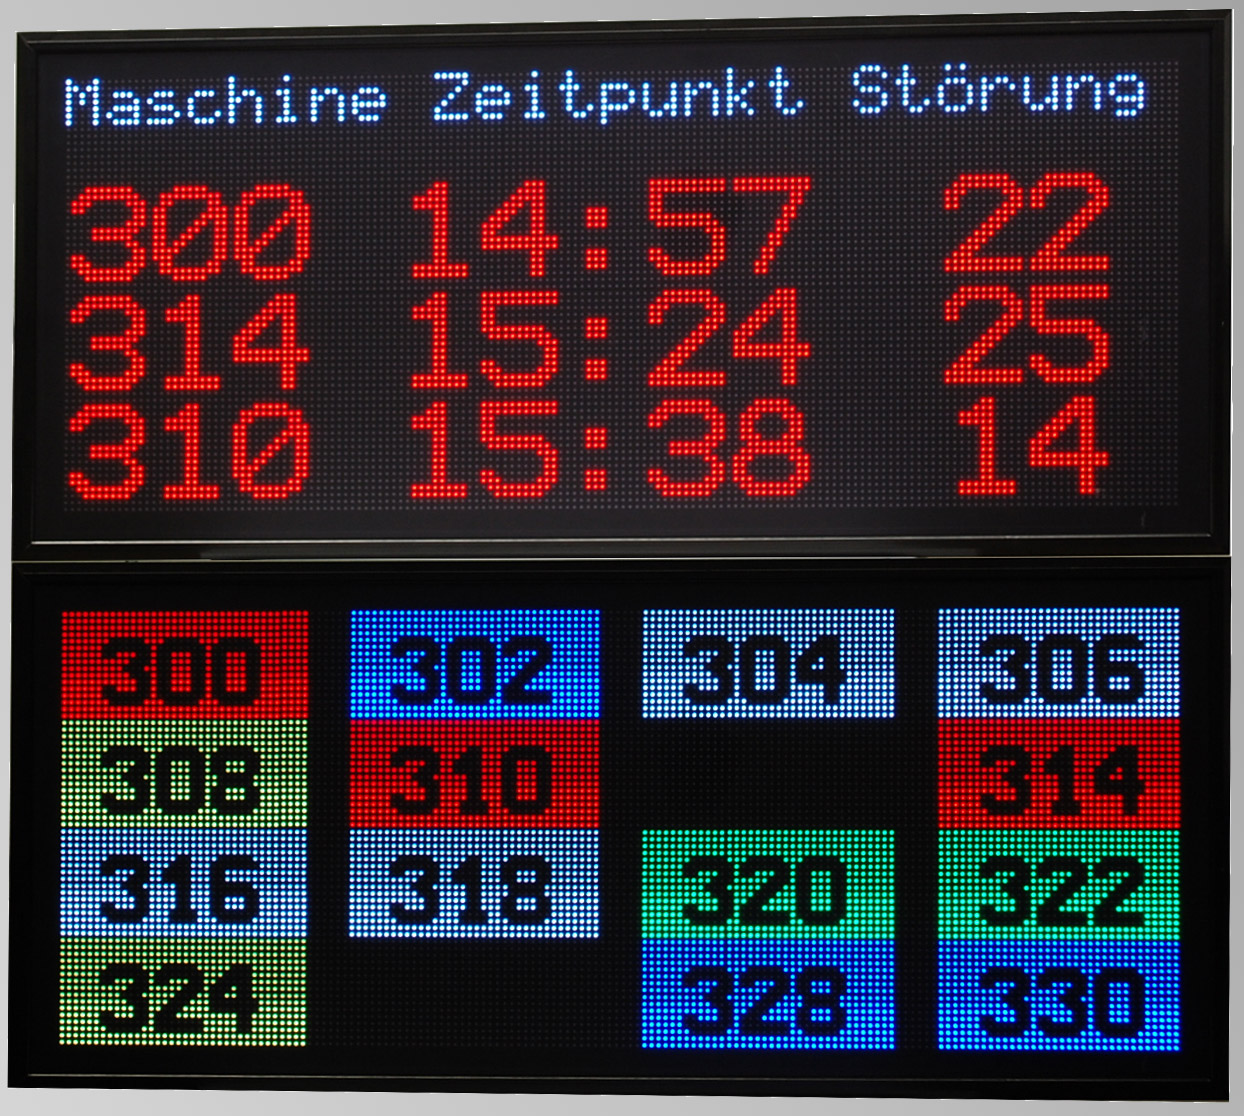 LED Matrix-Display, Störungsanzeige, RGB, Pixel Pitch 6mm, Abmessungen 960x1060x100 mm